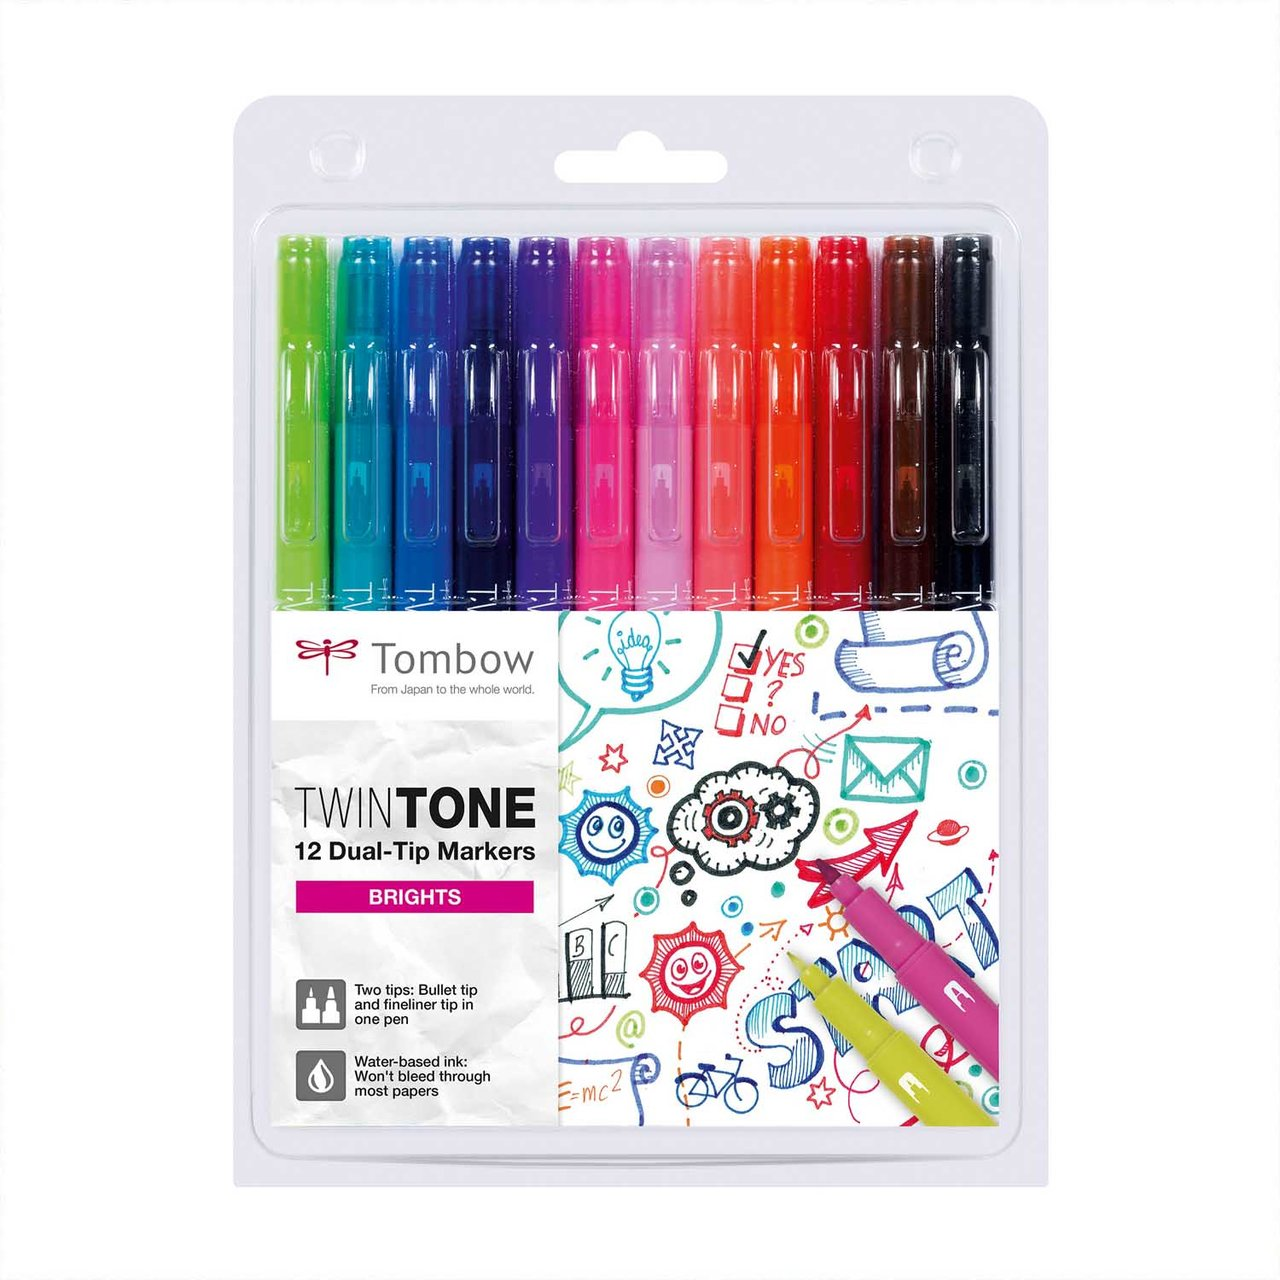 Tombow TwinTone Fasermaler Brights 12 Stück von Tombow